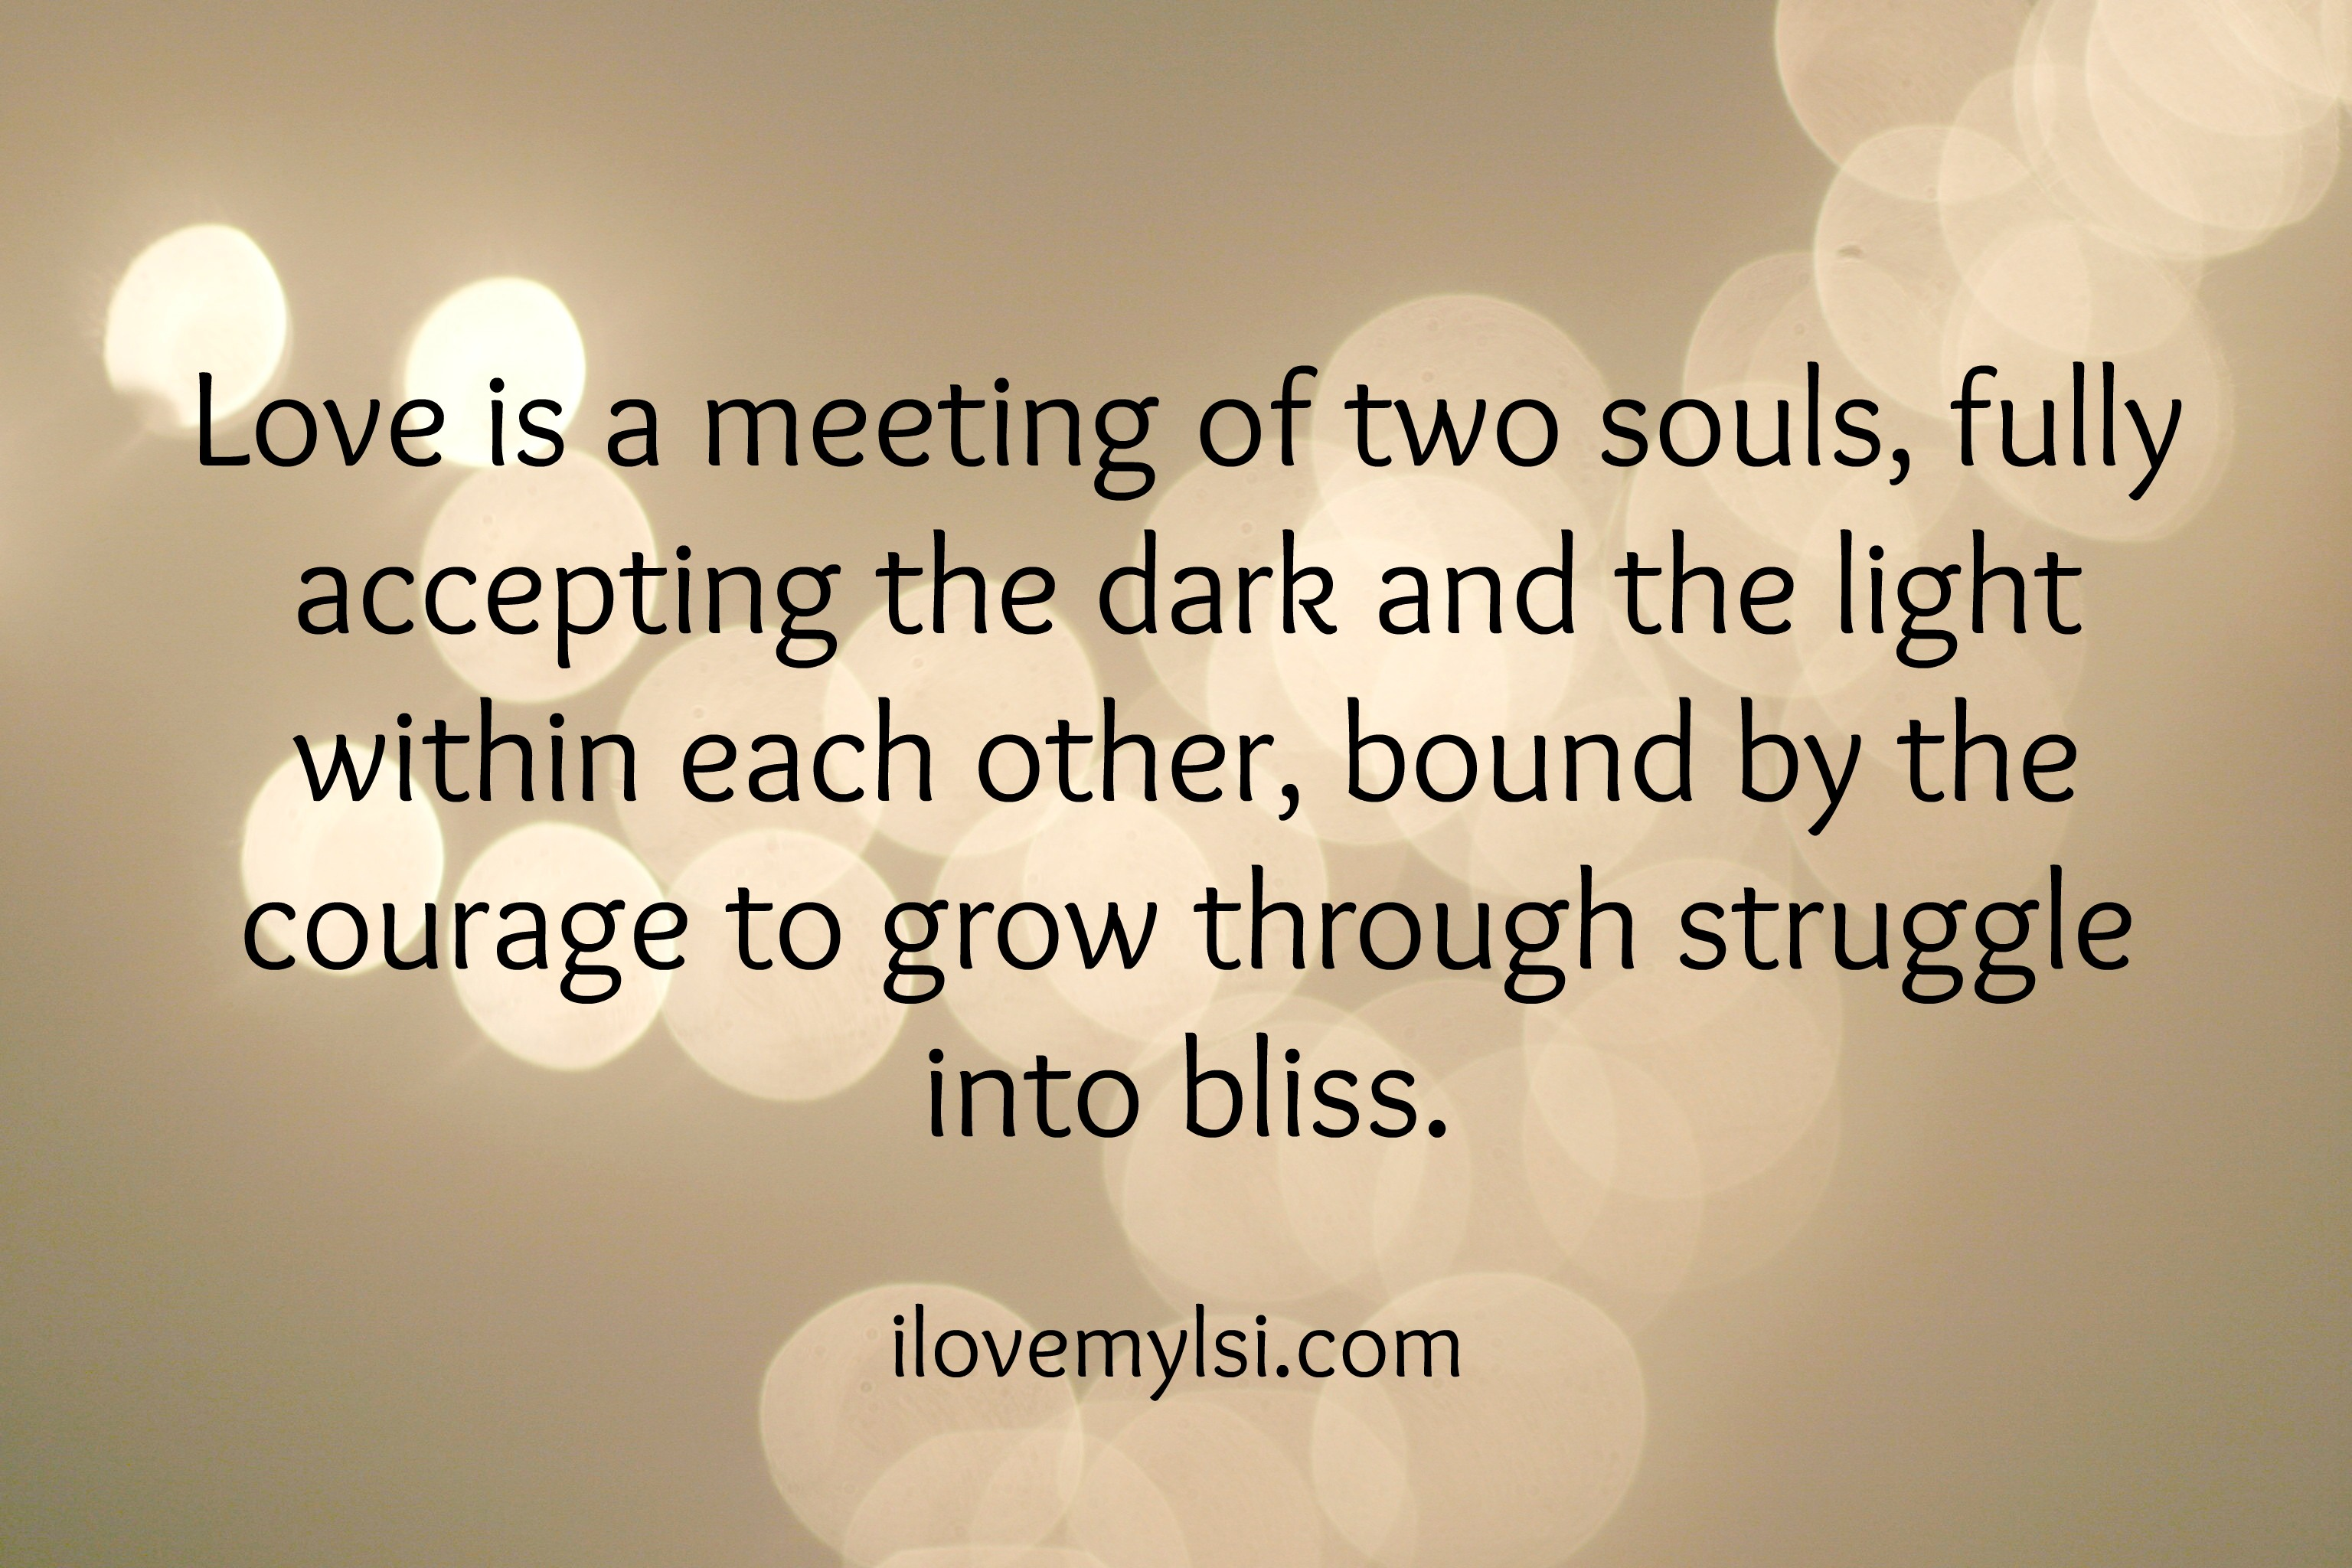 Together Love Quotes The 25 Most Romantic Love Quotes You Will Ever Read Page 9 Of